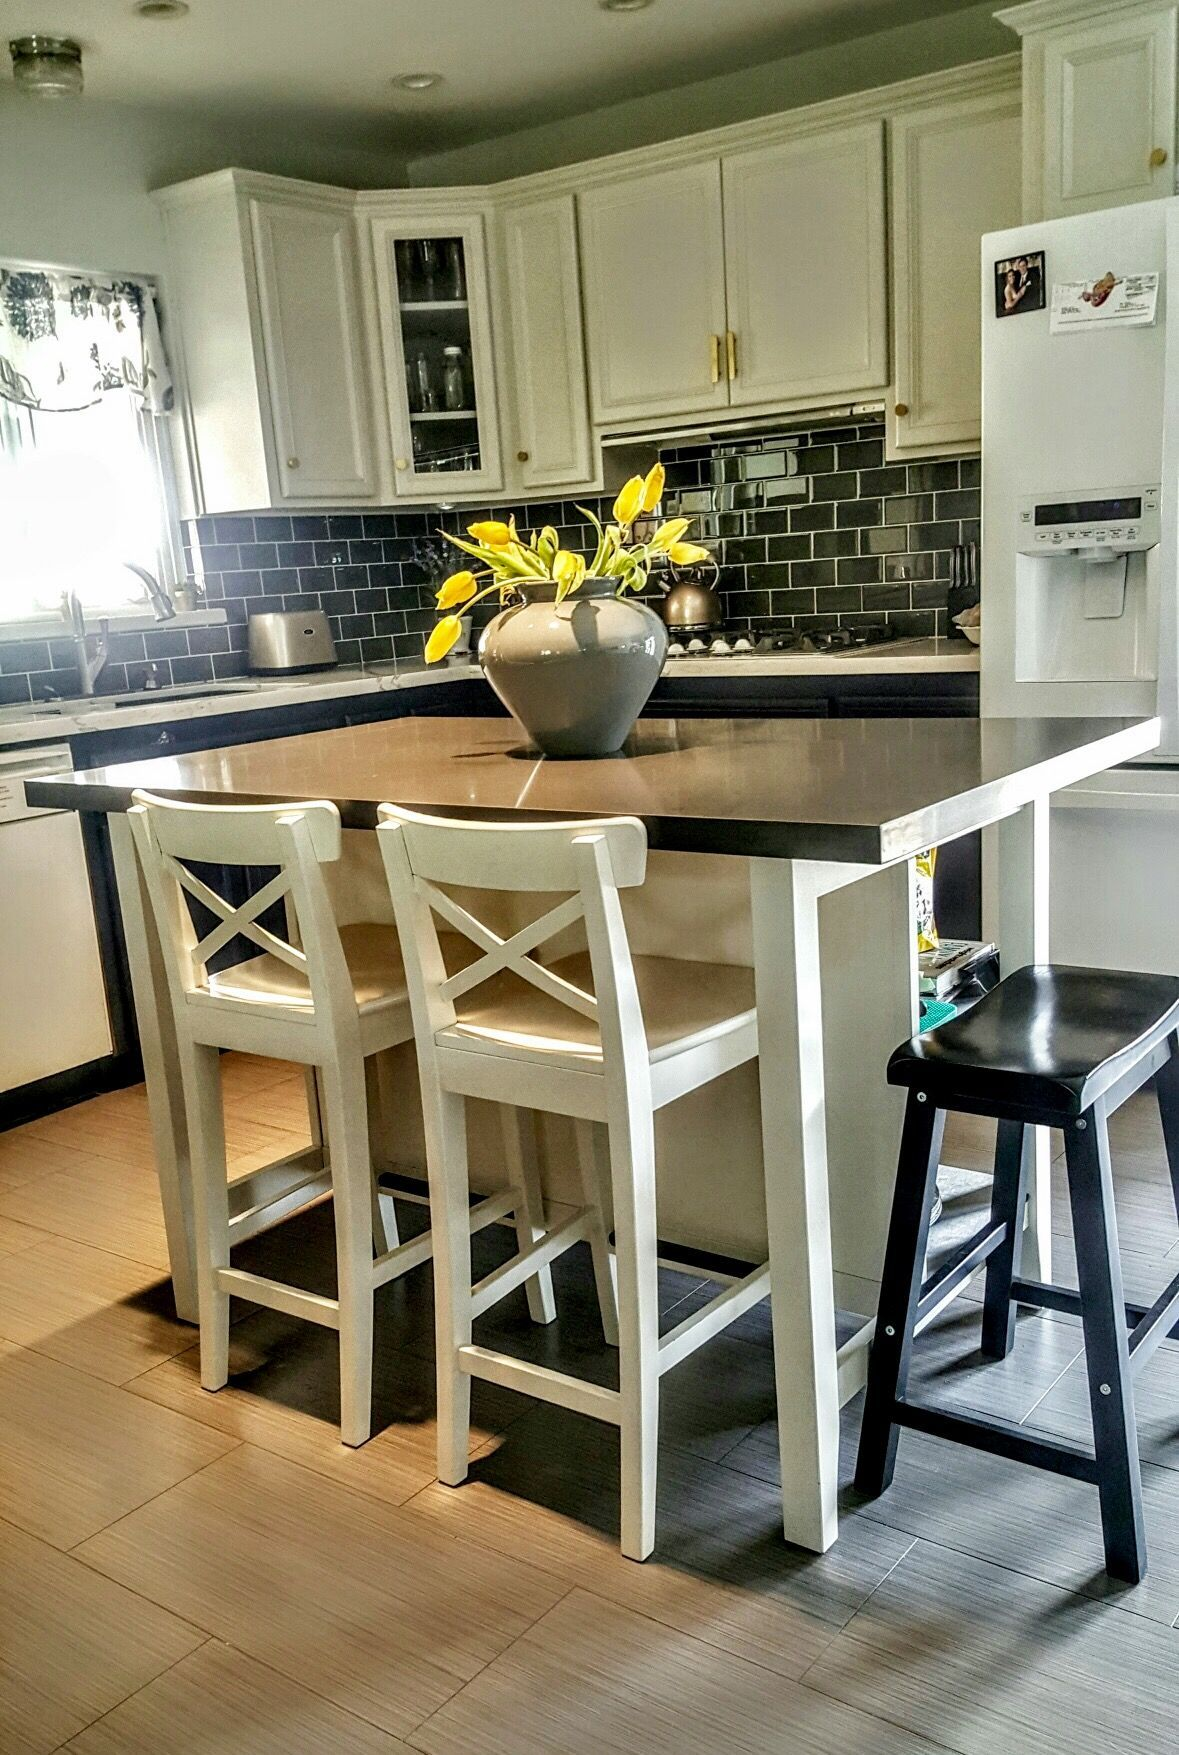 21 Unique Kitchen Island Ideas For Every Space And Budget Homelovers Kitchen Island With Seating Ikea Portable Kitchen Island Small Kitchen Tables